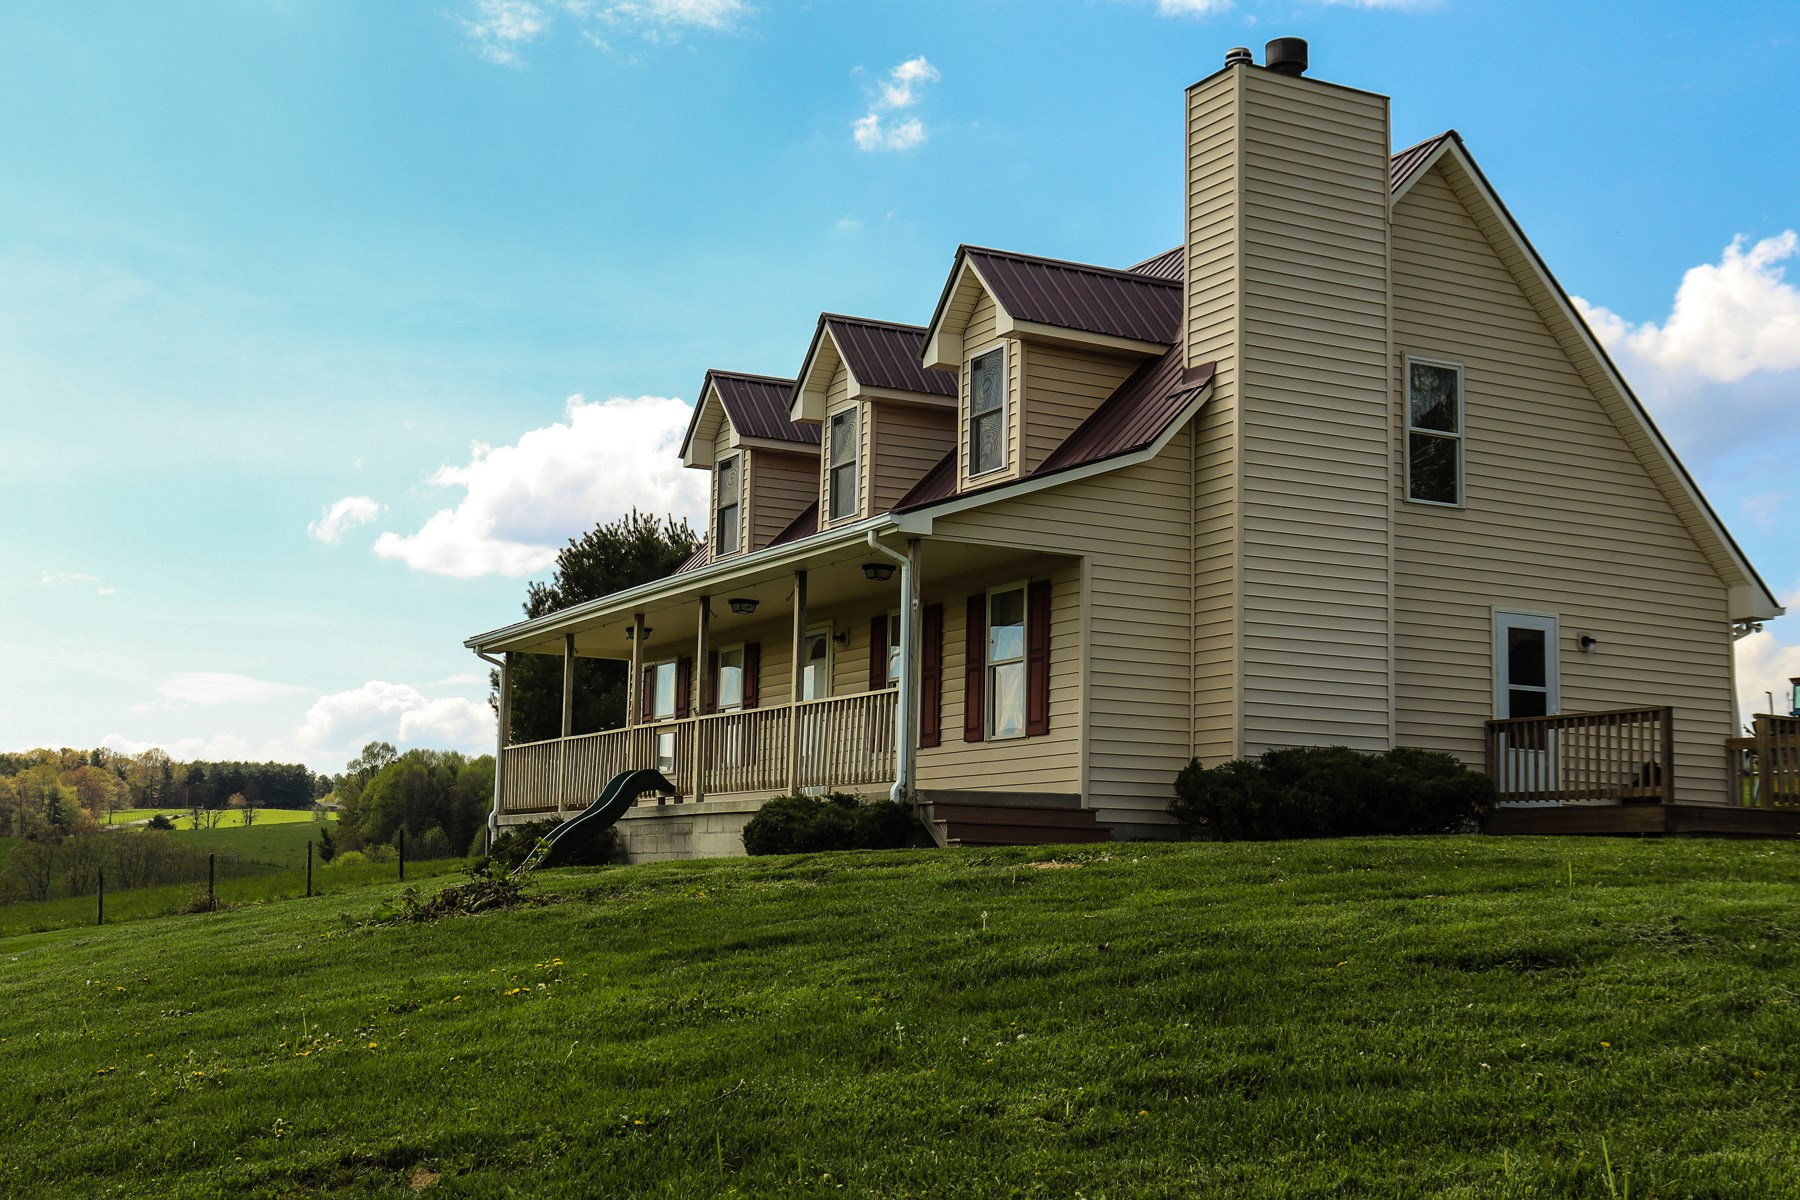 Gorgeous Home For Sale in Copper Hill VA